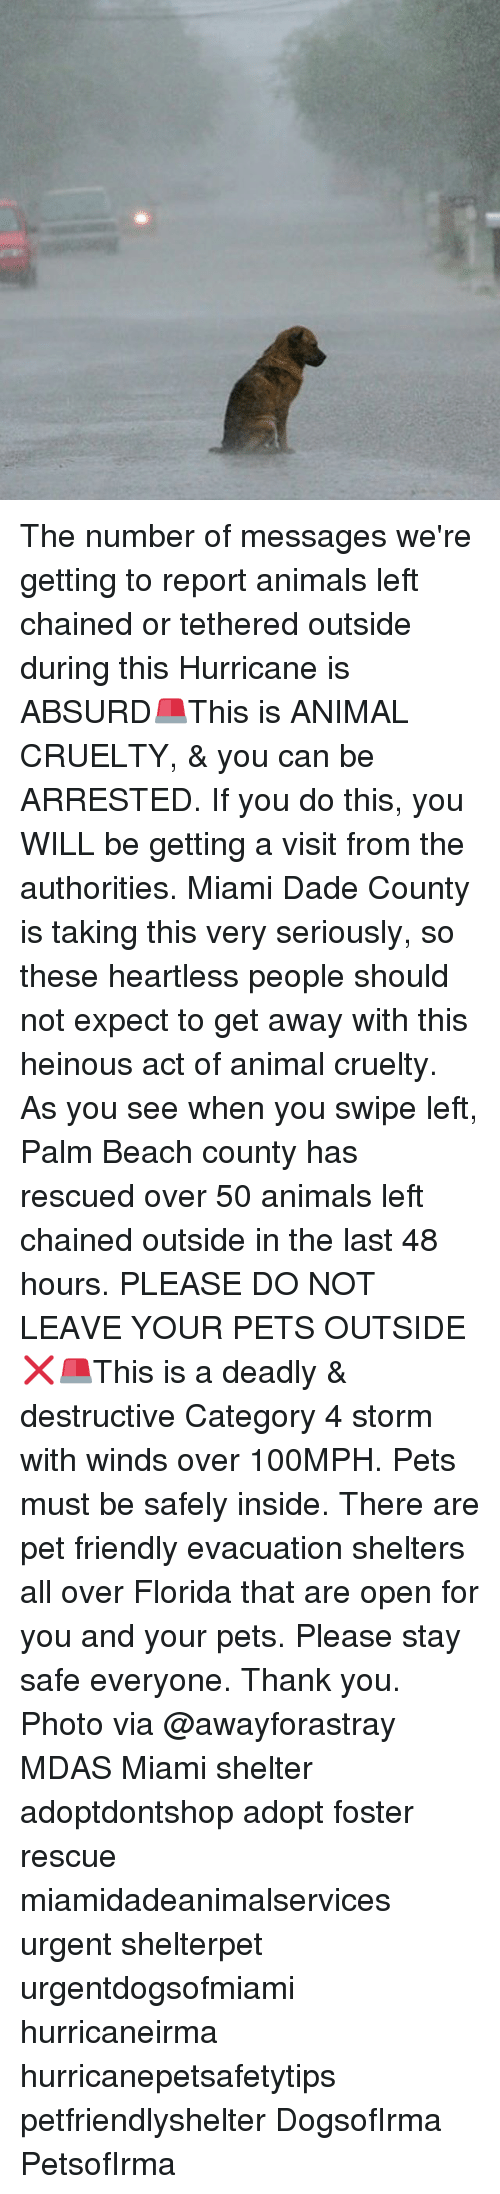 beached: The number of messages we're getting to report animals left chained or tethered outside during this Hurricane is ABSURD🚨This is ANIMAL CRUELTY, & you can be ARRESTED. If you do this, you WILL be getting a visit from the authorities. Miami Dade County is taking this very seriously, so these heartless people should not expect to get away with this heinous act of animal cruelty. As you see when you swipe left, Palm Beach county has rescued over 50 animals left chained outside in the last 48 hours. PLEASE DO NOT LEAVE YOUR PETS OUTSIDE❌🚨This is a deadly & destructive Category 4 storm with winds over 100MPH. Pets must be safely inside. There are pet friendly evacuation shelters all over Florida that are open for you and your pets. Please stay safe everyone. Thank you. Photo via @awayforastray MDAS Miami shelter adoptdontshop adopt foster rescue miamidadeanimalservices urgent shelterpet urgentdogsofmiami hurricaneirma hurricanepetsafetytips petfriendlyshelter DogsofIrma PetsofIrma